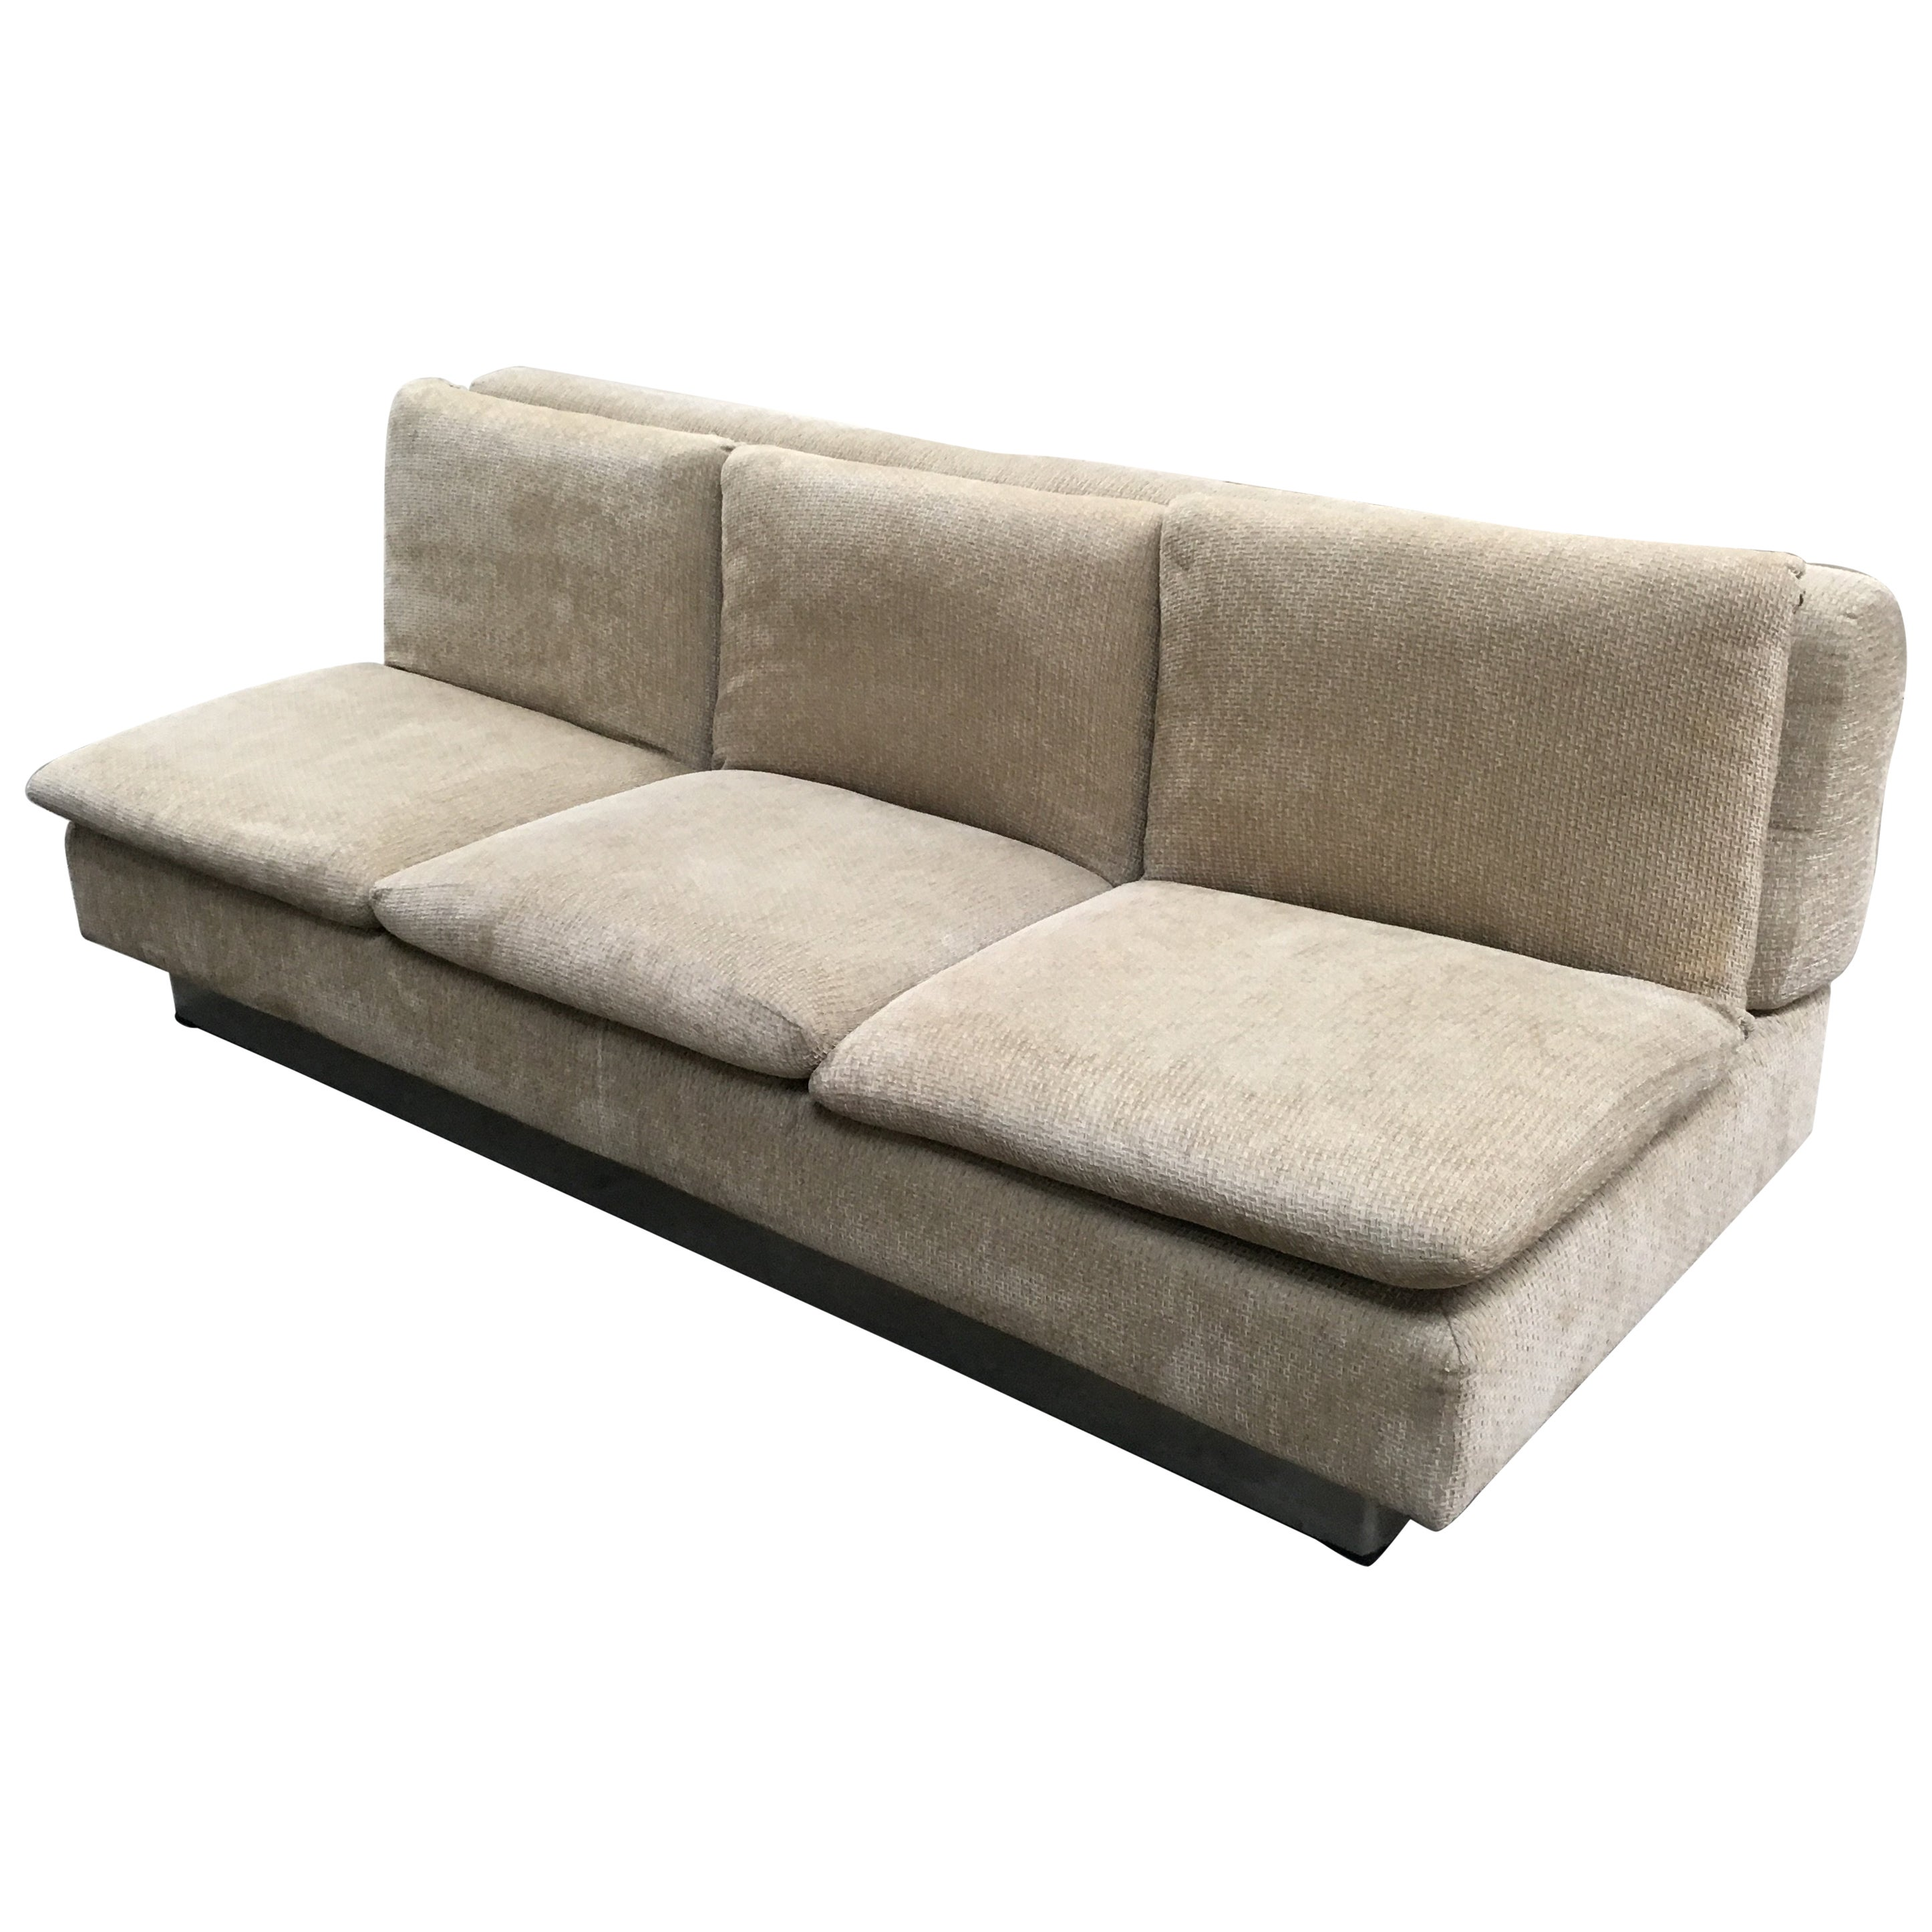 Italian Sofa Bed by Saporiti with Original Fabric from 1970s